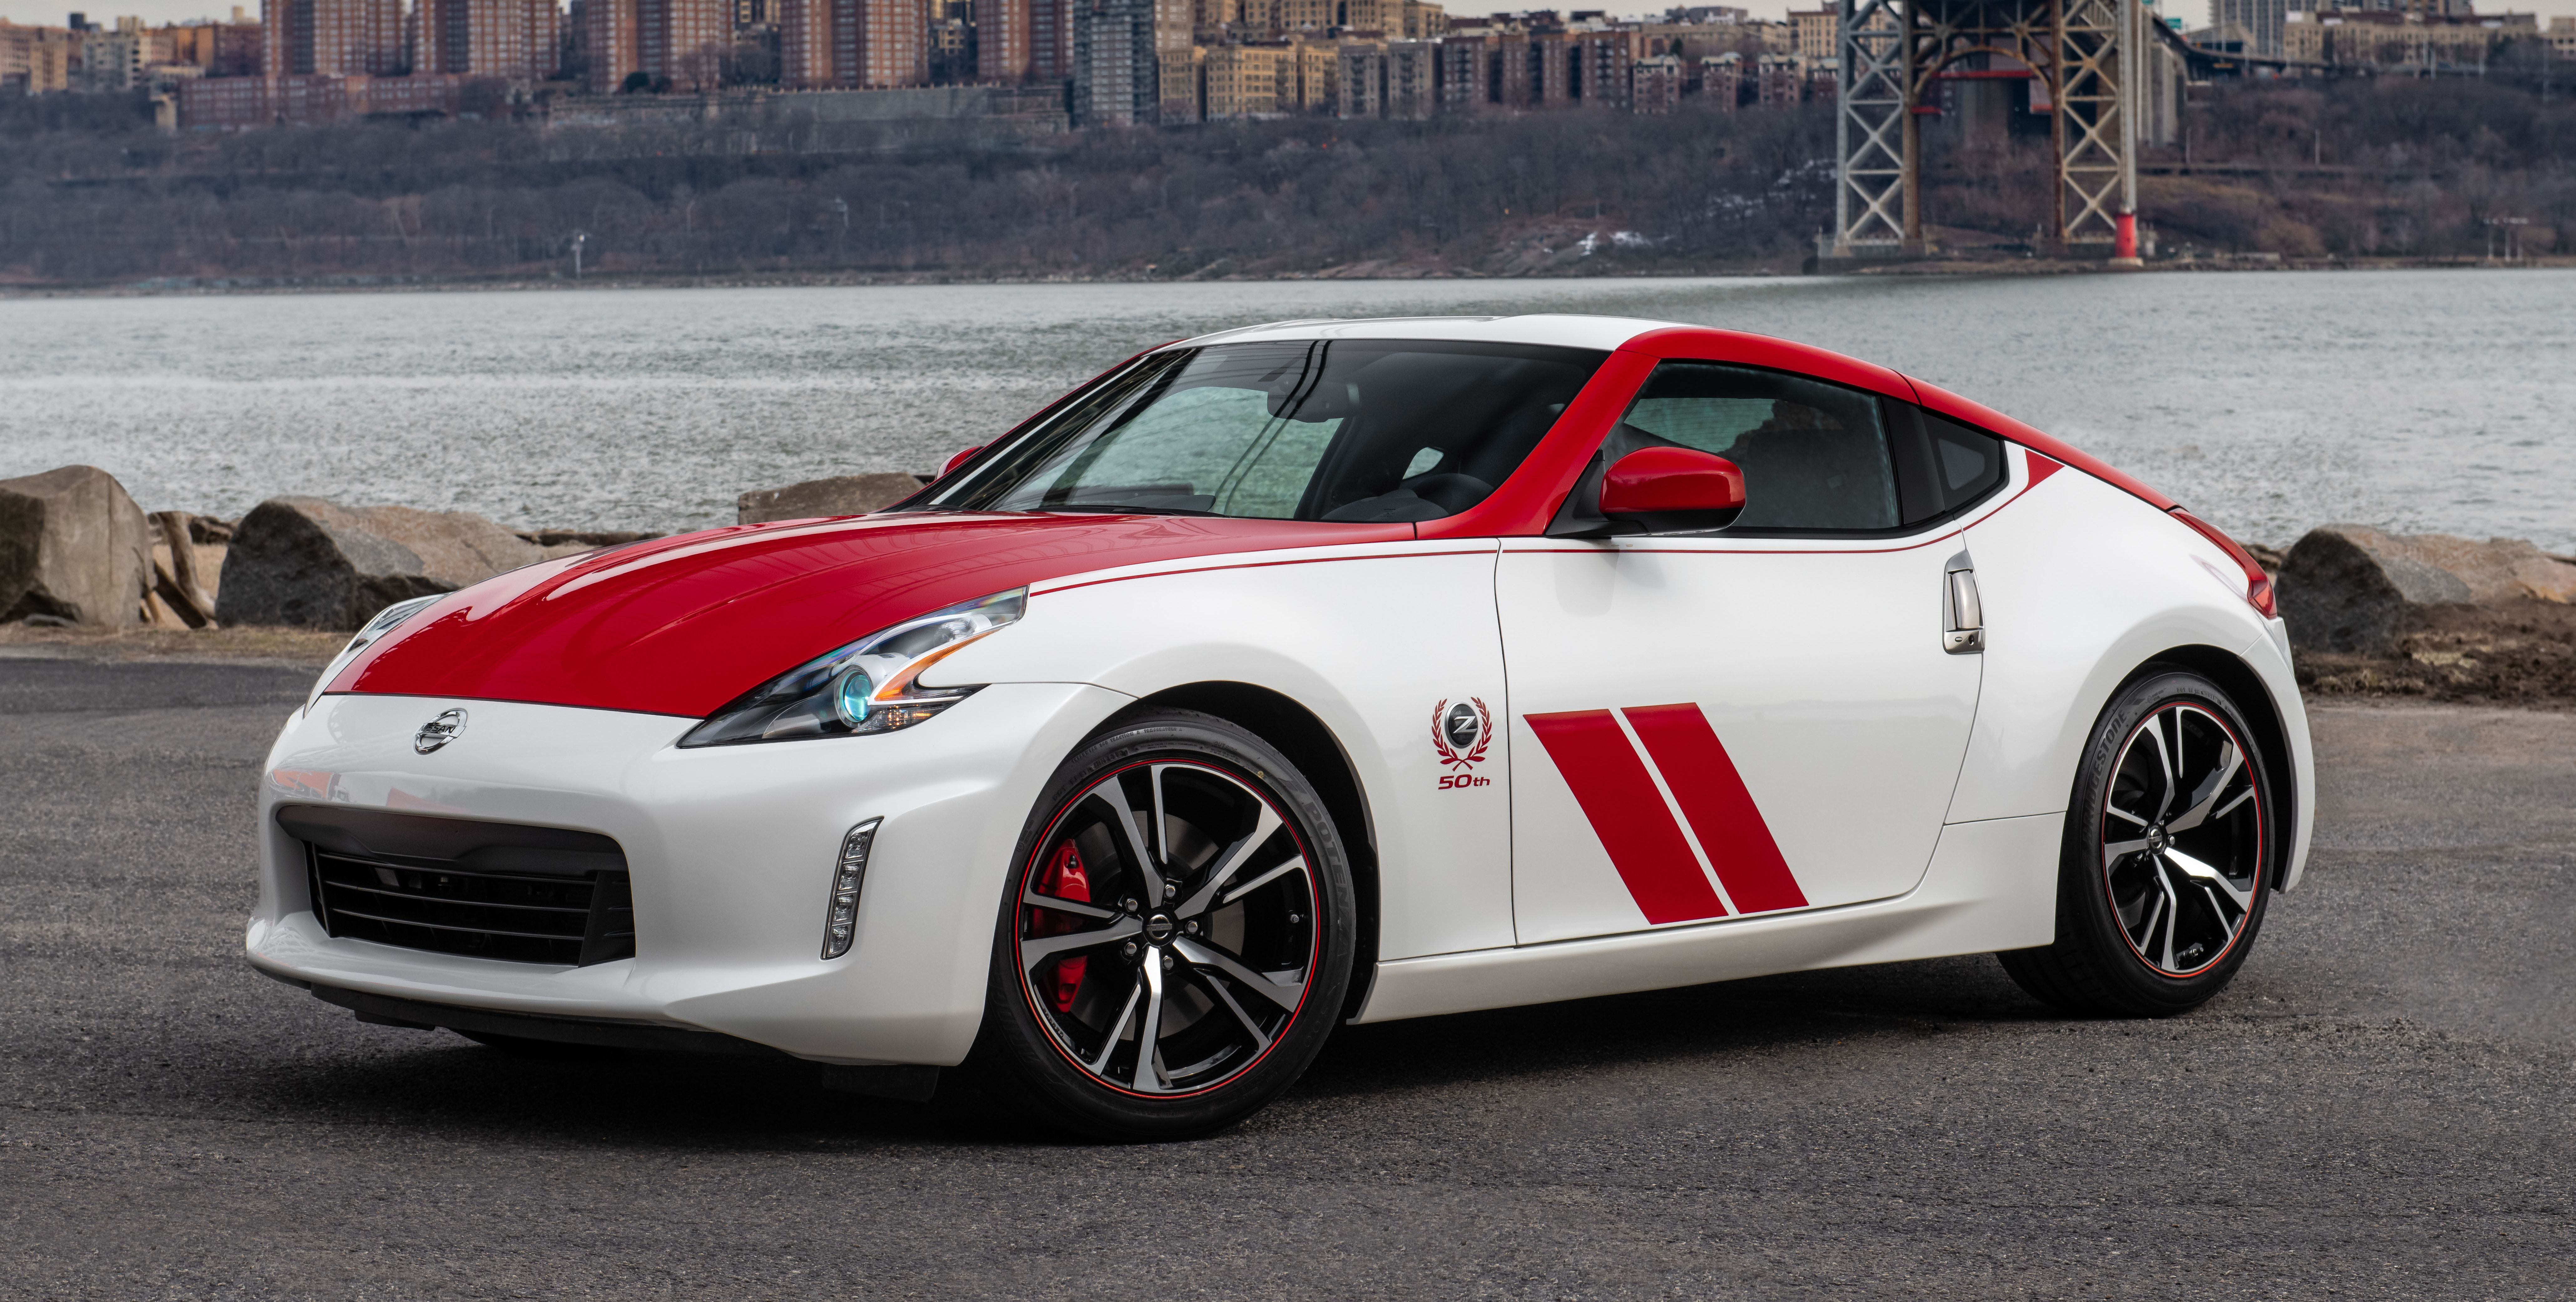 The 2020 Nissan 370Z Commemorates 50 Years with a Special Anniversary Edition